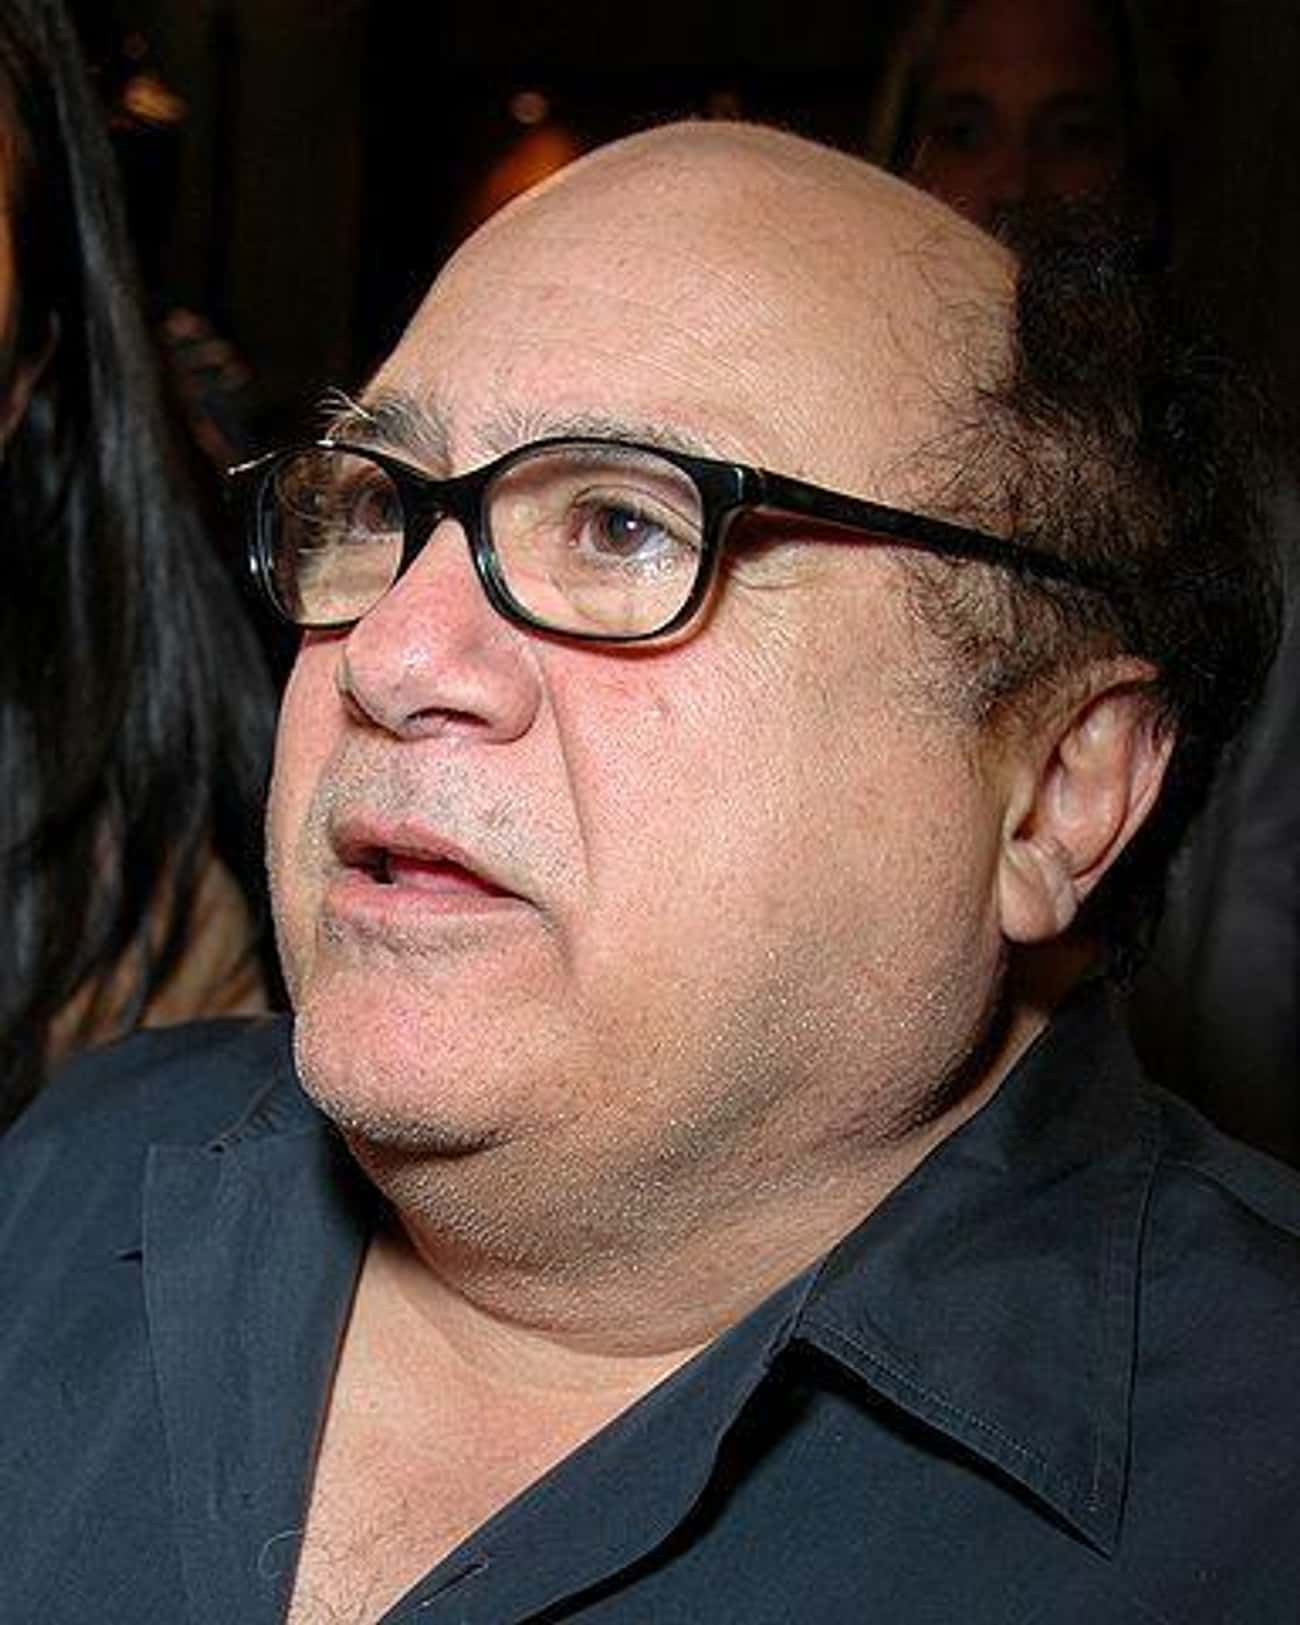 Danny DeVito Styled Dead Peopl is listed (or ranked) 1 on the list Celebrities Who Had Weird Jobs Before They Were Famous